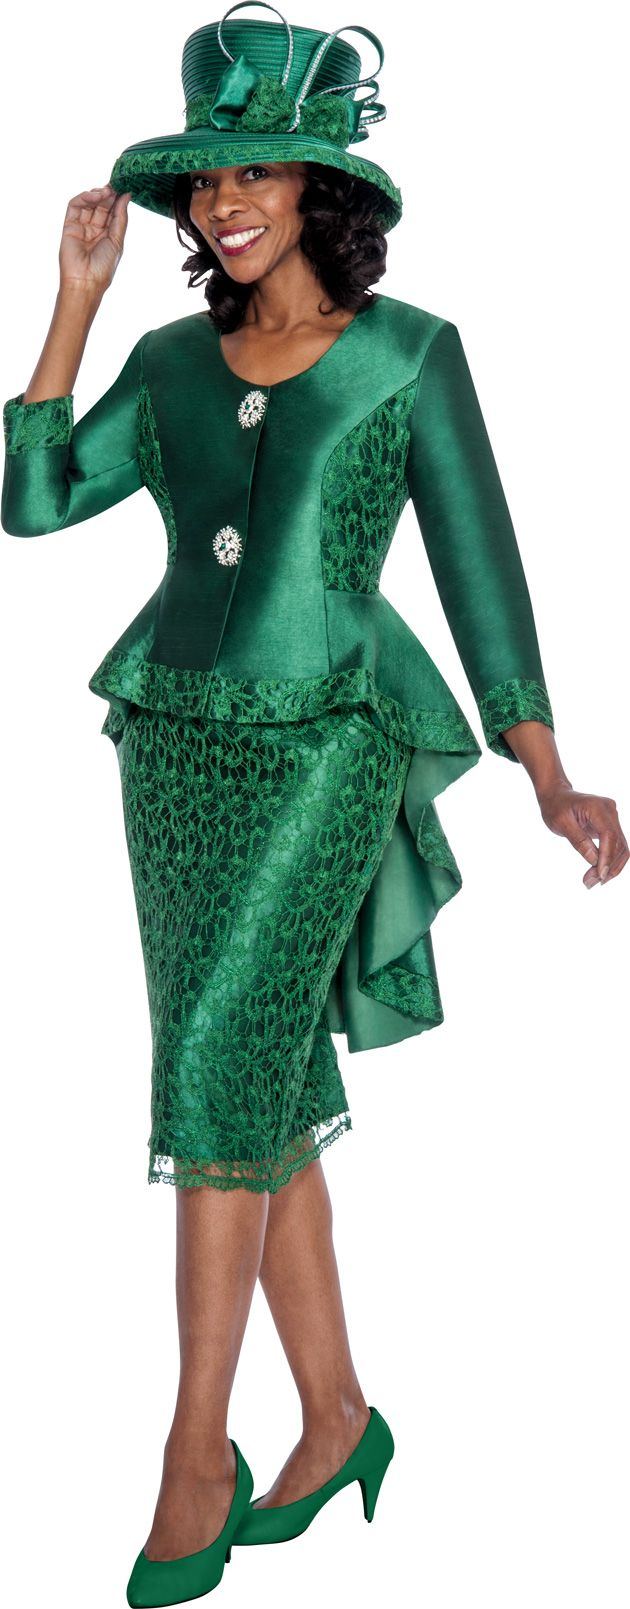 Gmi G6012 Womens Church Suit With Lace French Novelty